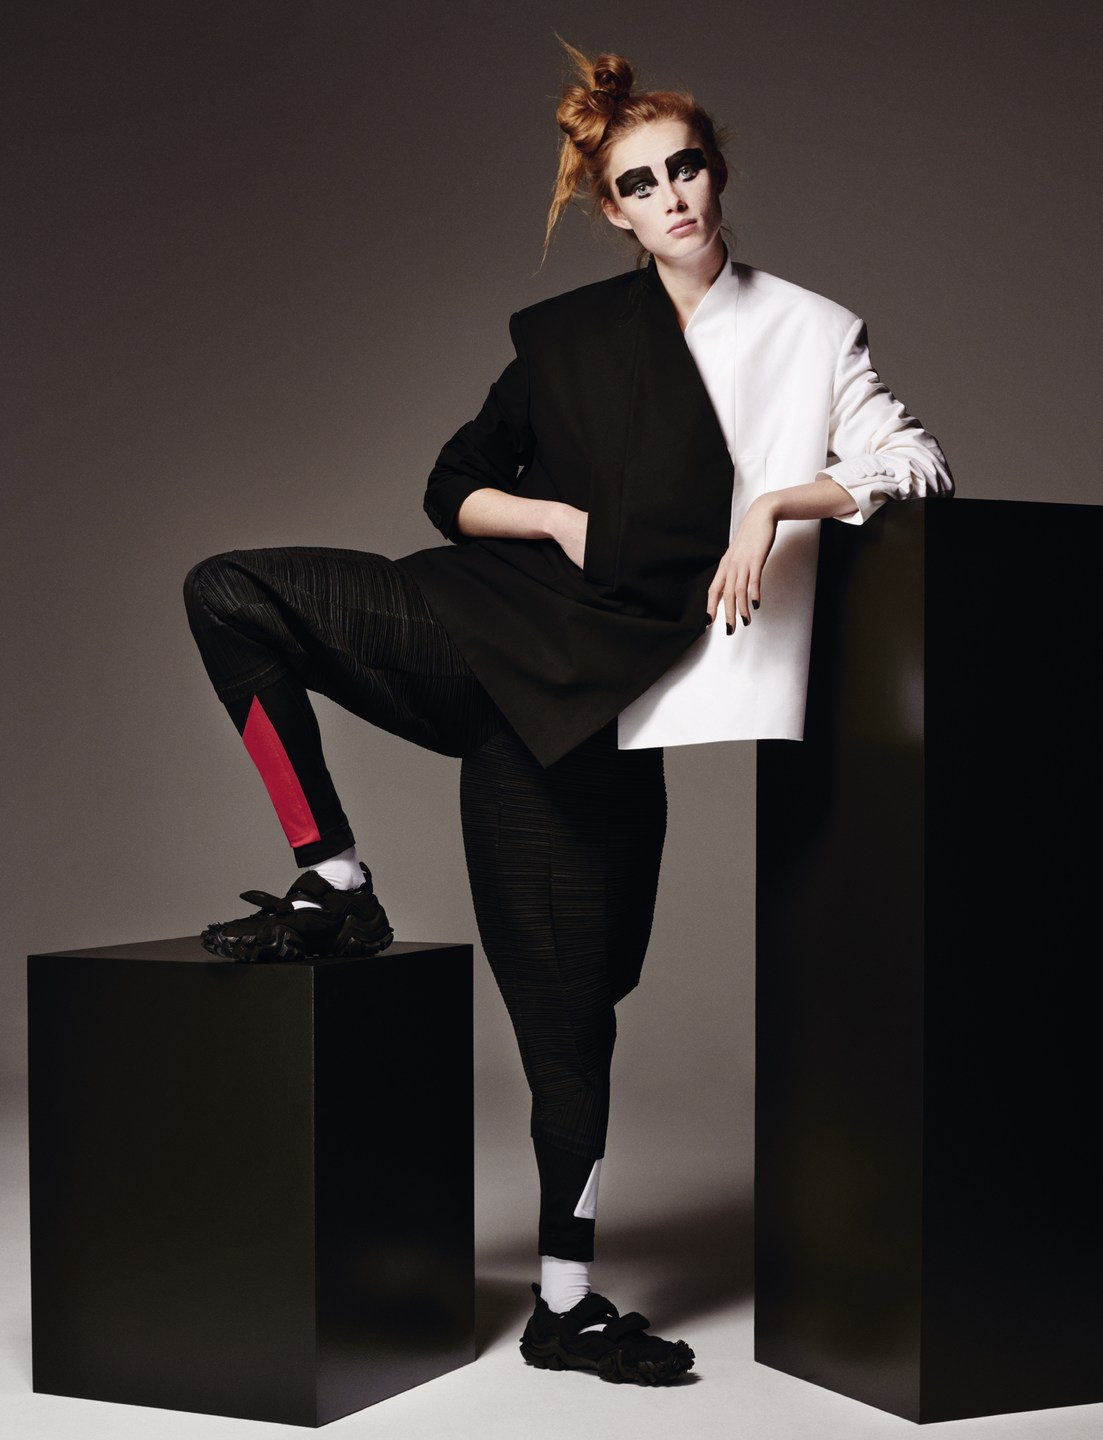 Rianne Van Rompaey Shares A 'Command Performance' By Theo Sion For Vogue UK June 2019